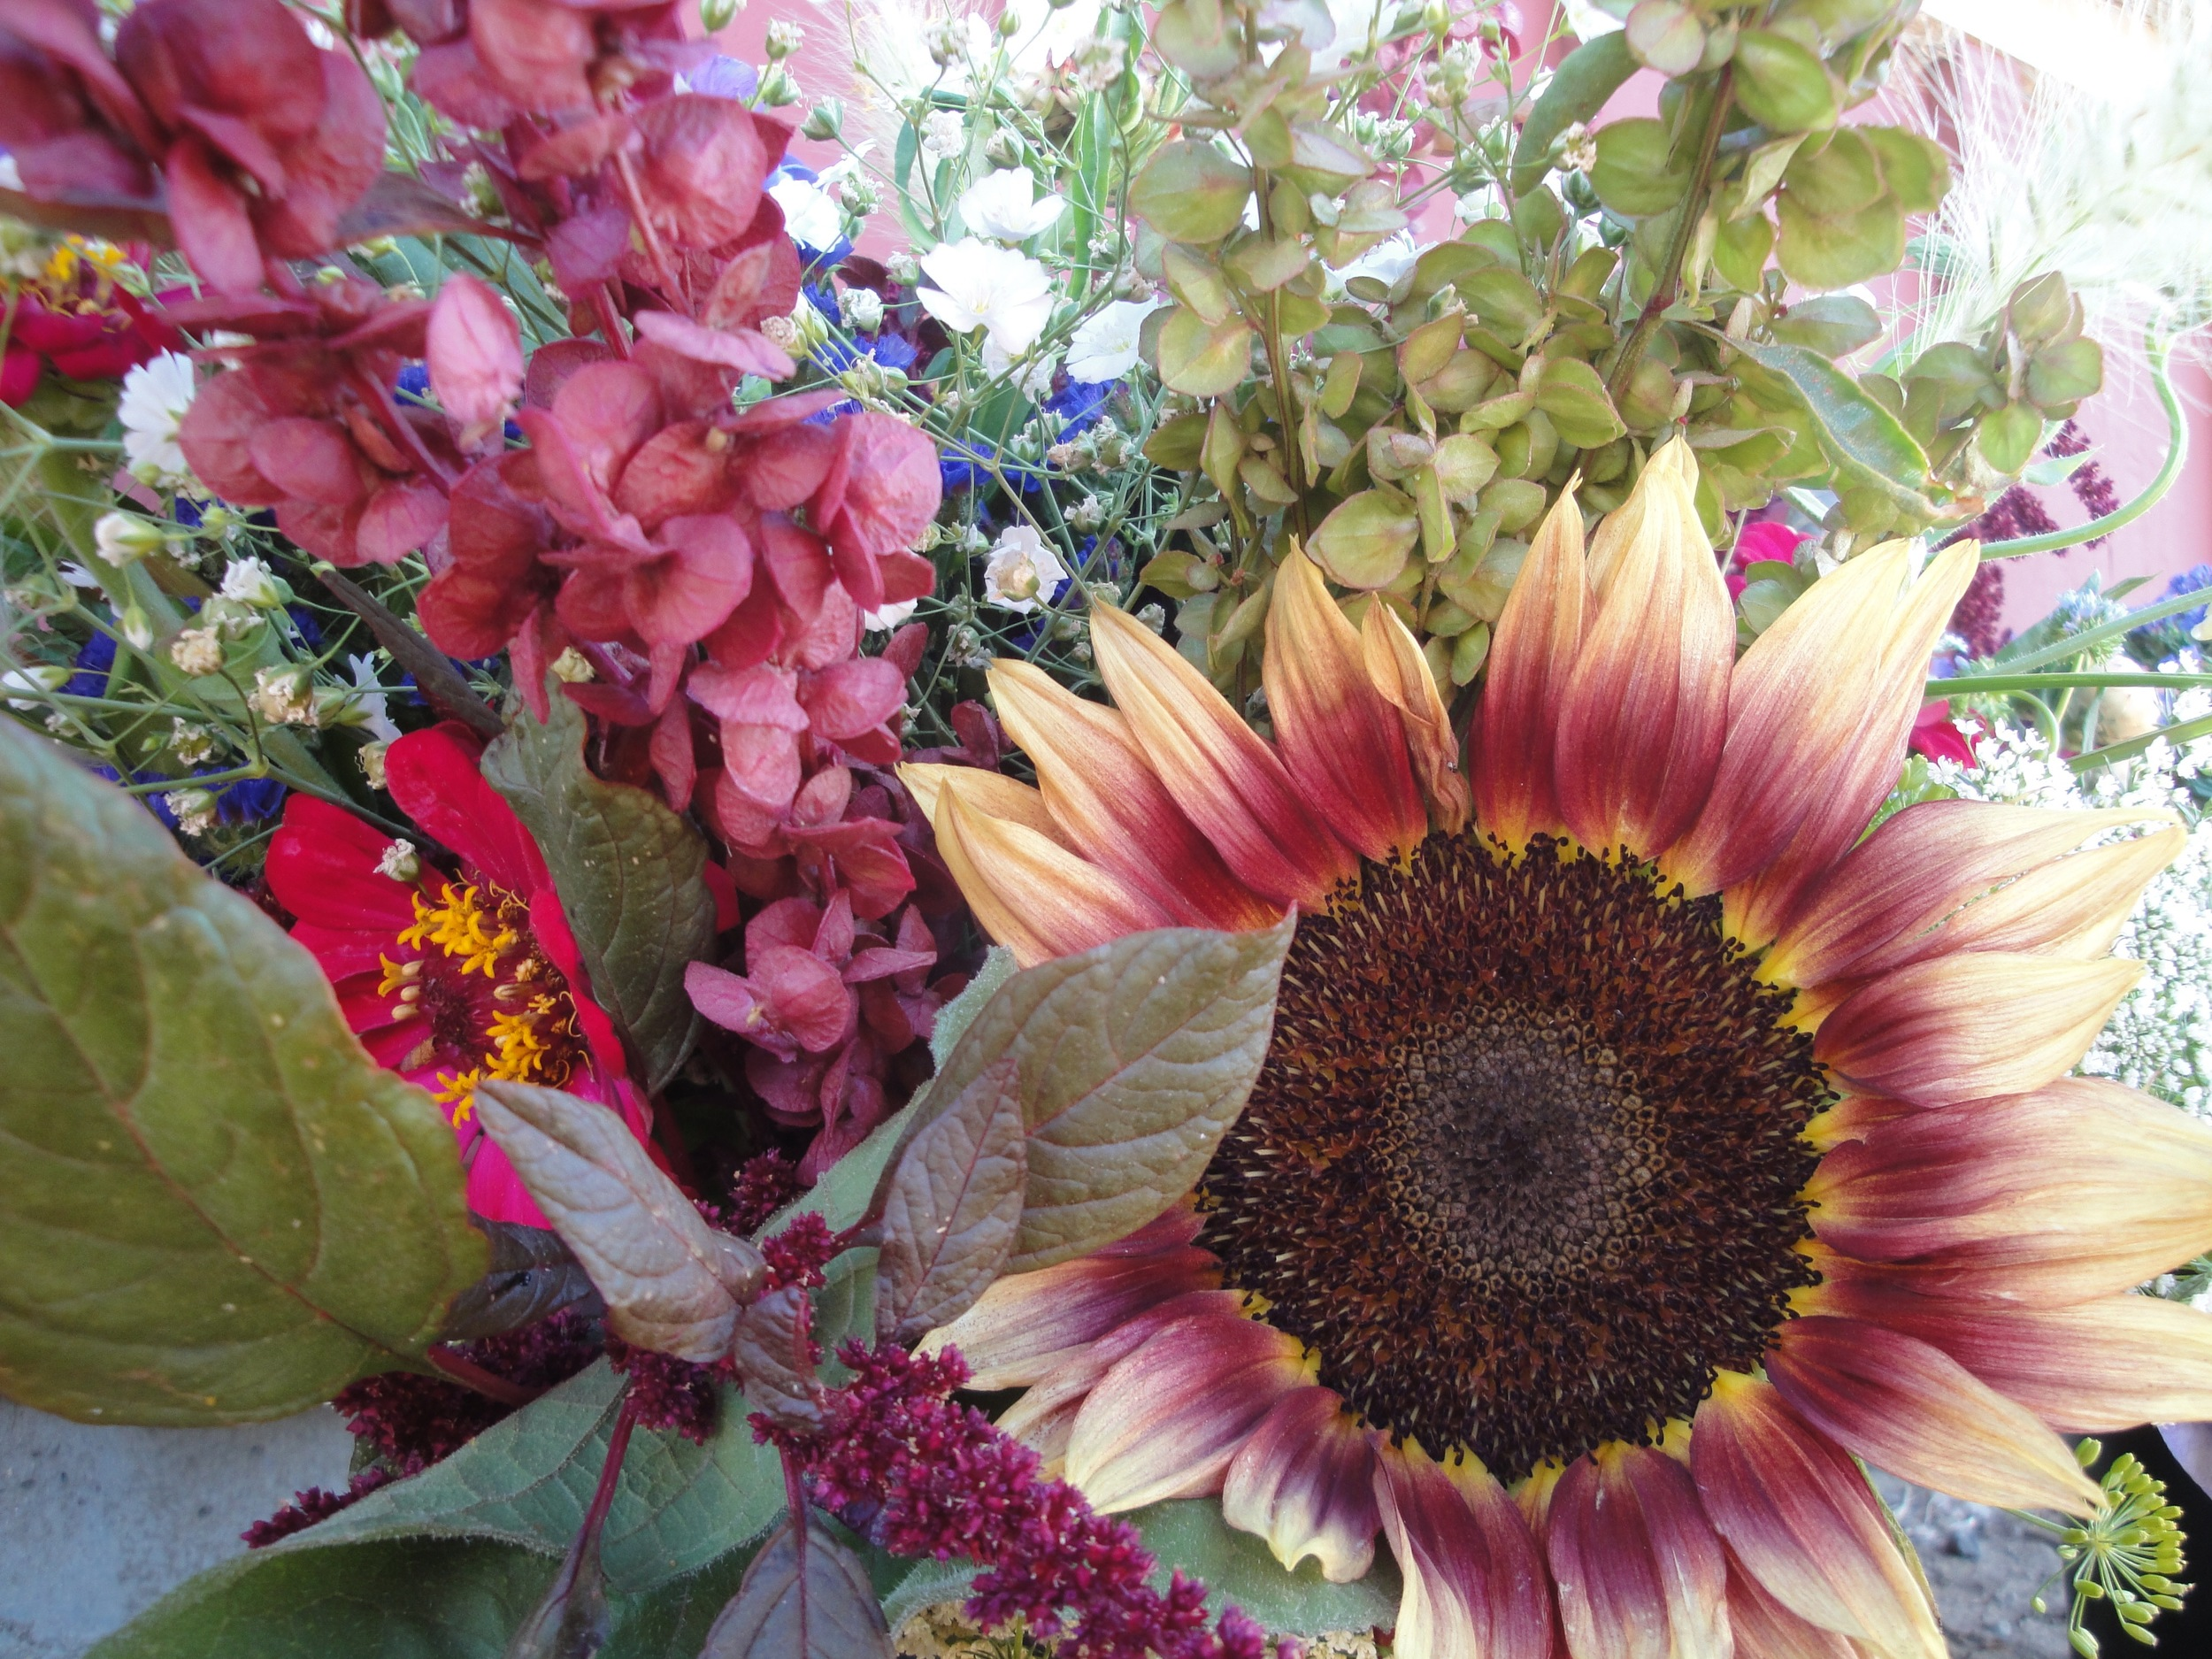 Gypsy Charmer Sunflower in a mixed bouquet